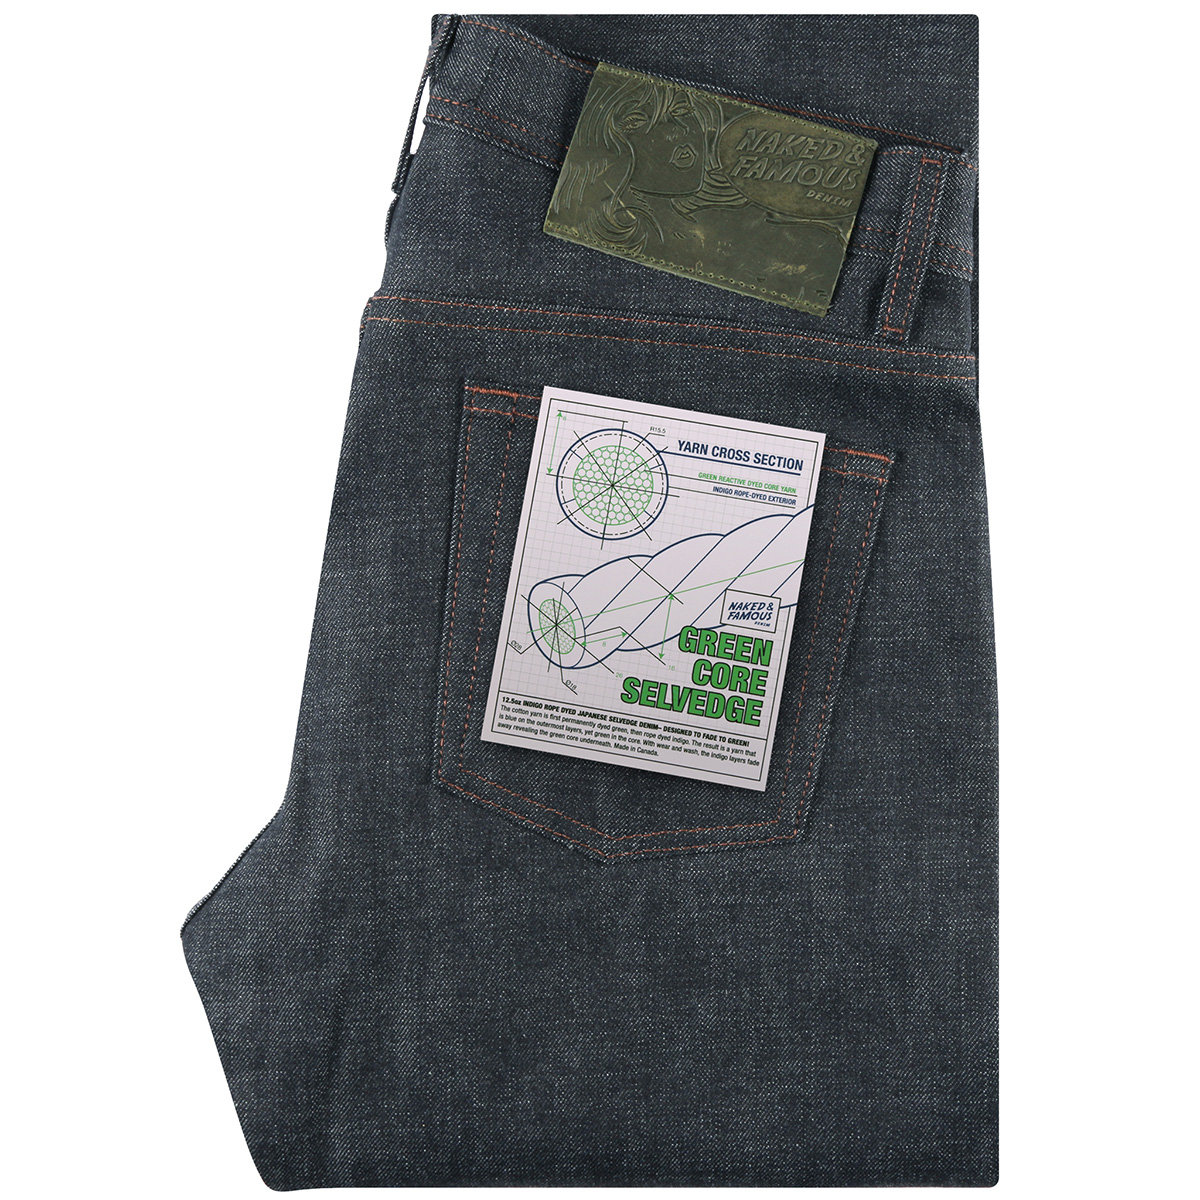 GREEN CORE SELVEDGE - Super Guy / Weird Guy / Easy Guy